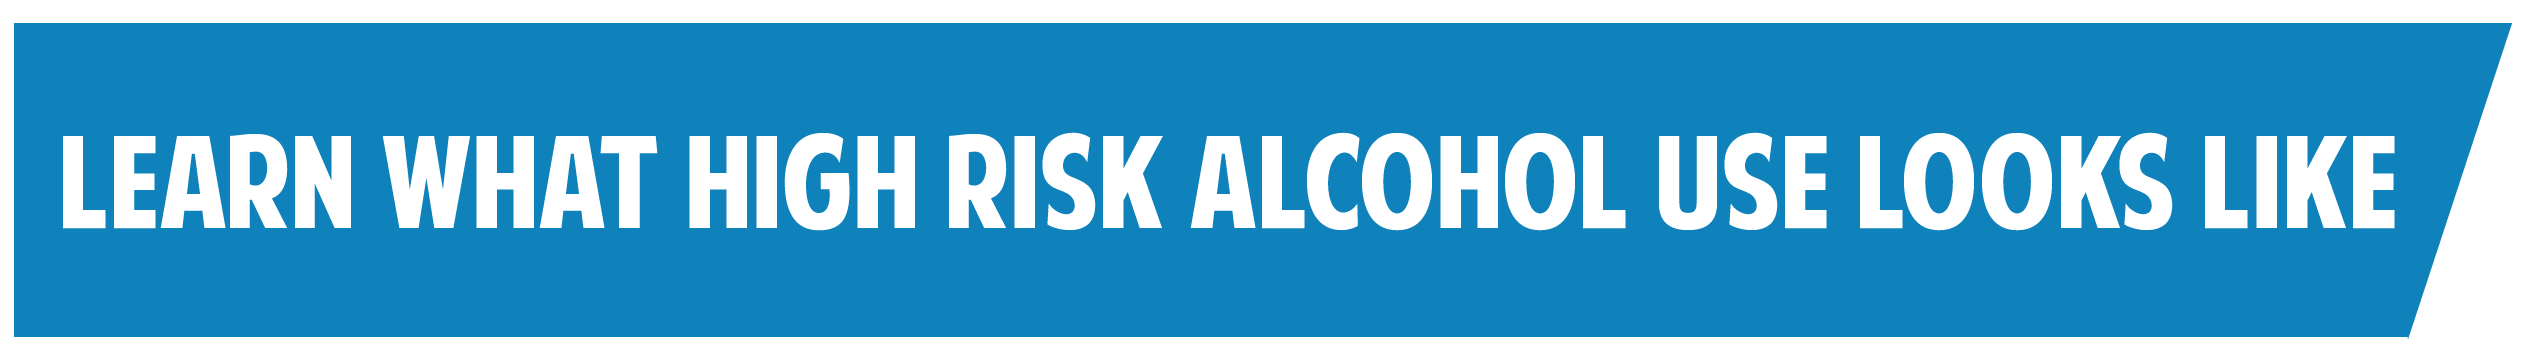 learn what high risk alcohol use looks like